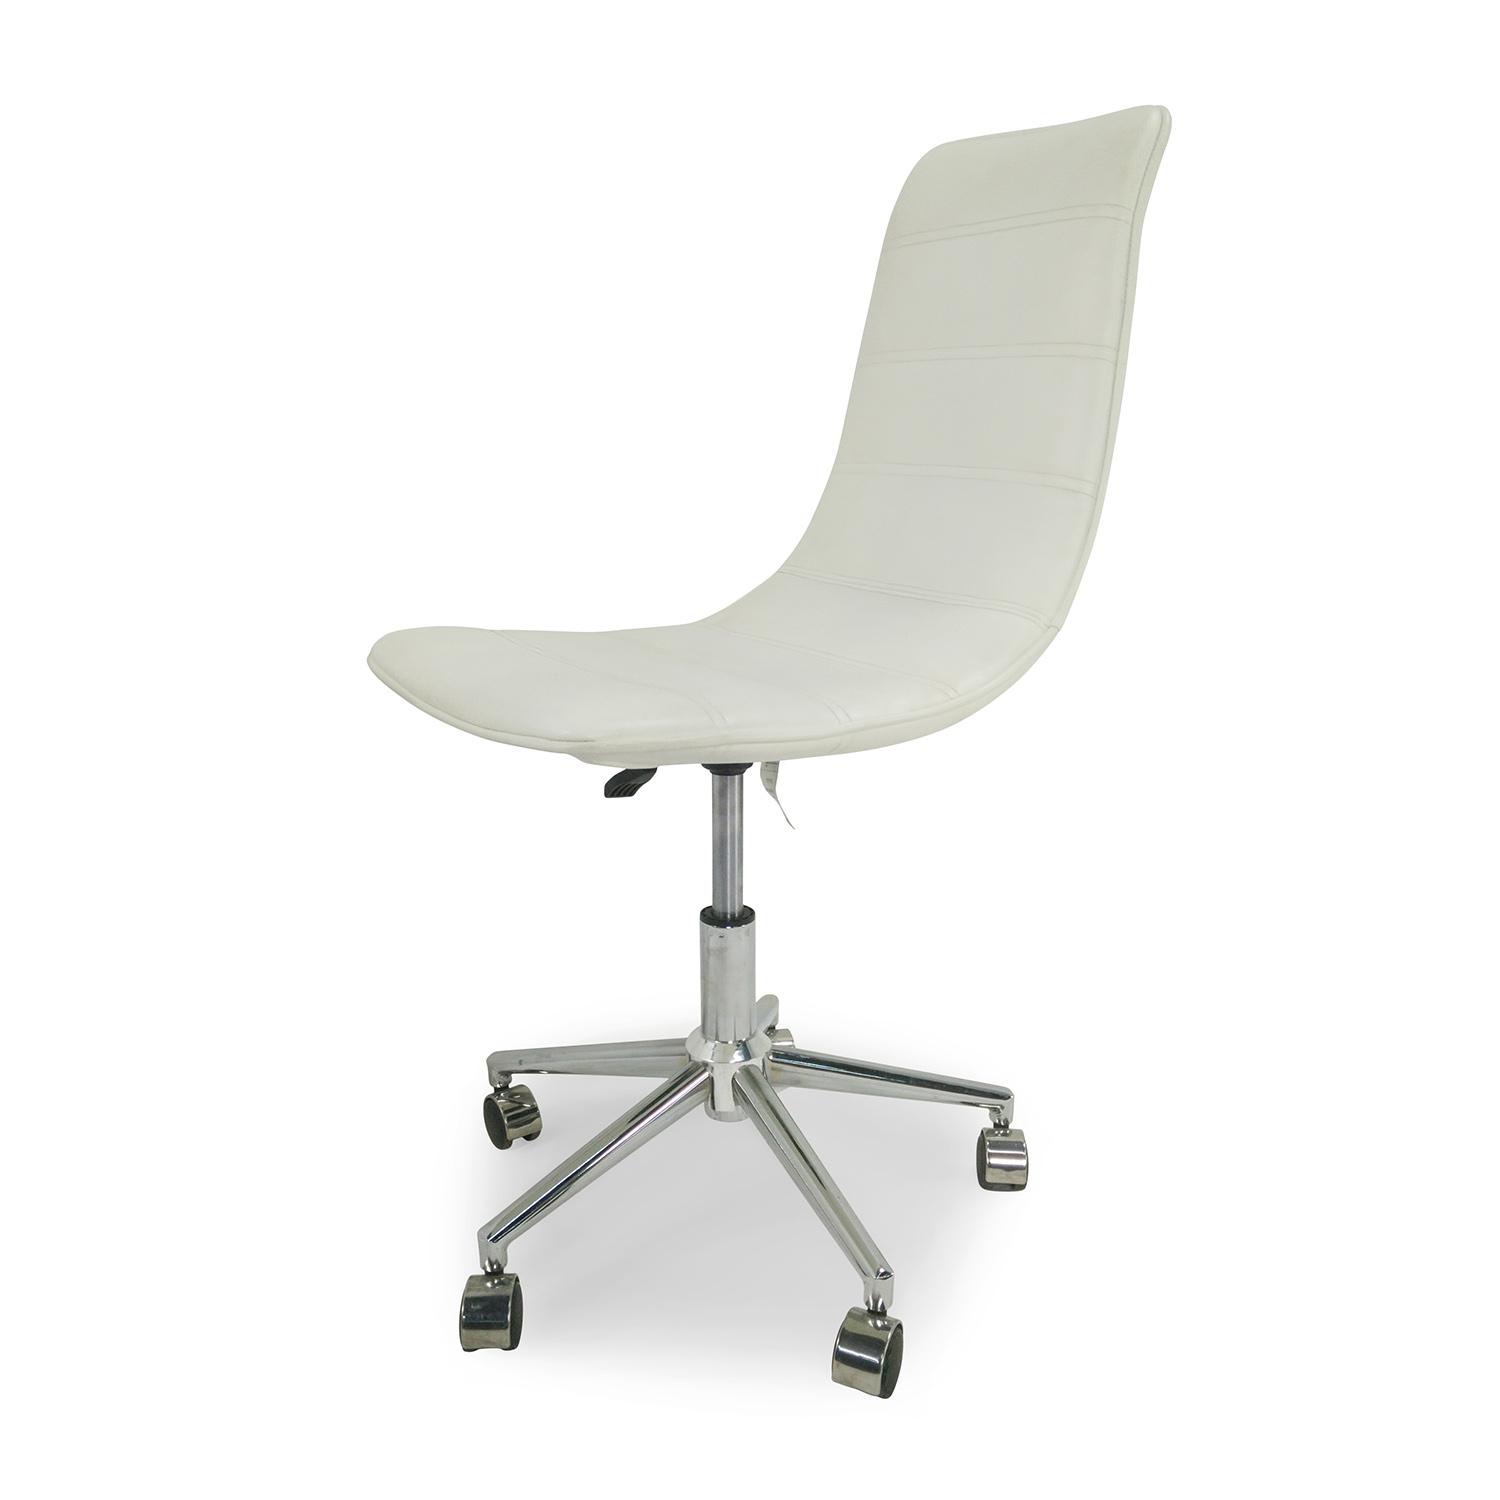 91 OFF  Zuo Modern Contemporary Zuo Modern Swivel Chair